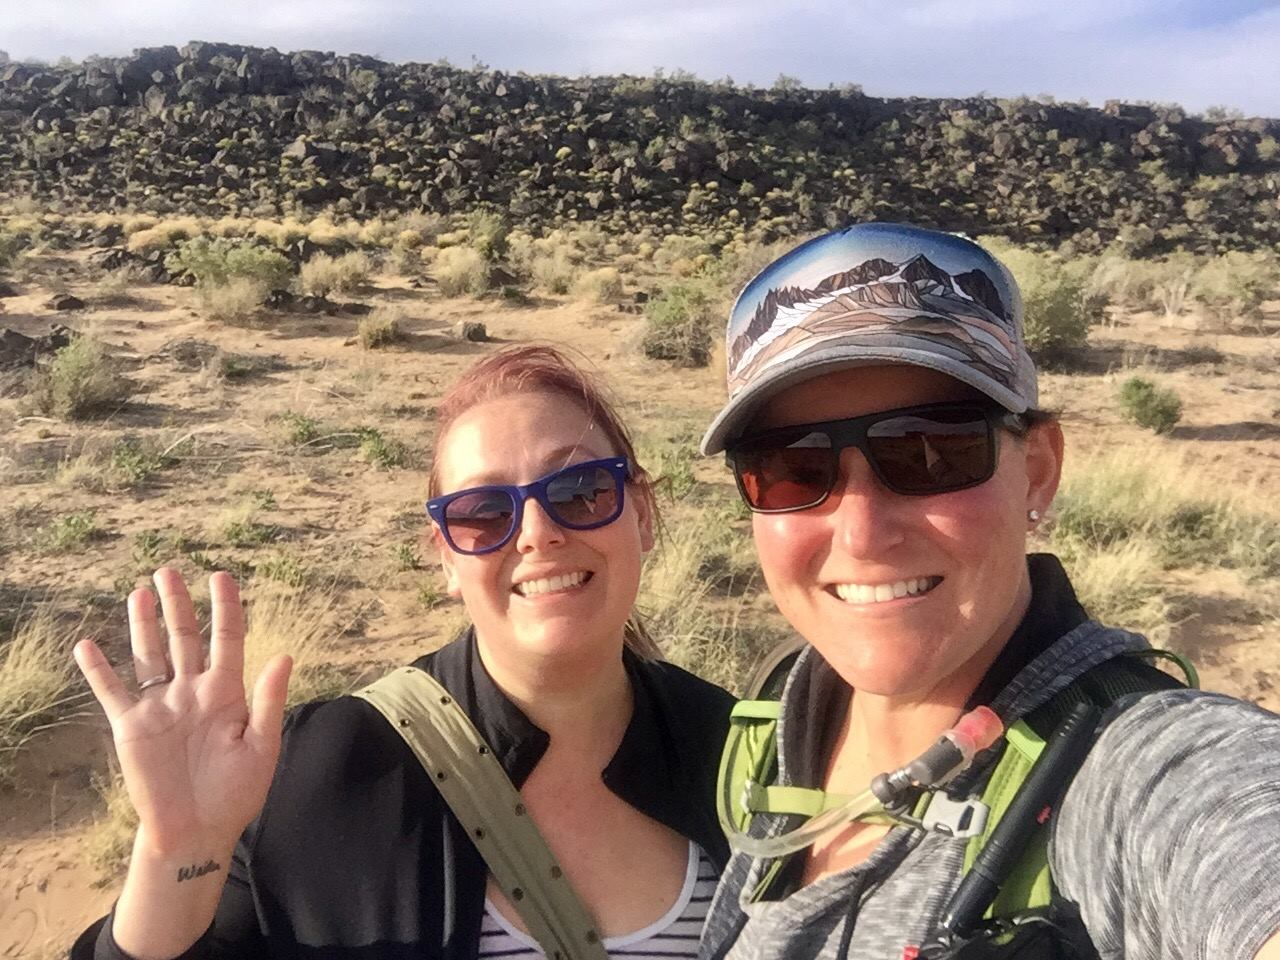 Stroup explores the Petroglyph National Monument in Albuquerque, New Mexico with a fellow Trinity alumna. She enjoys traveling and spending time with her friends.